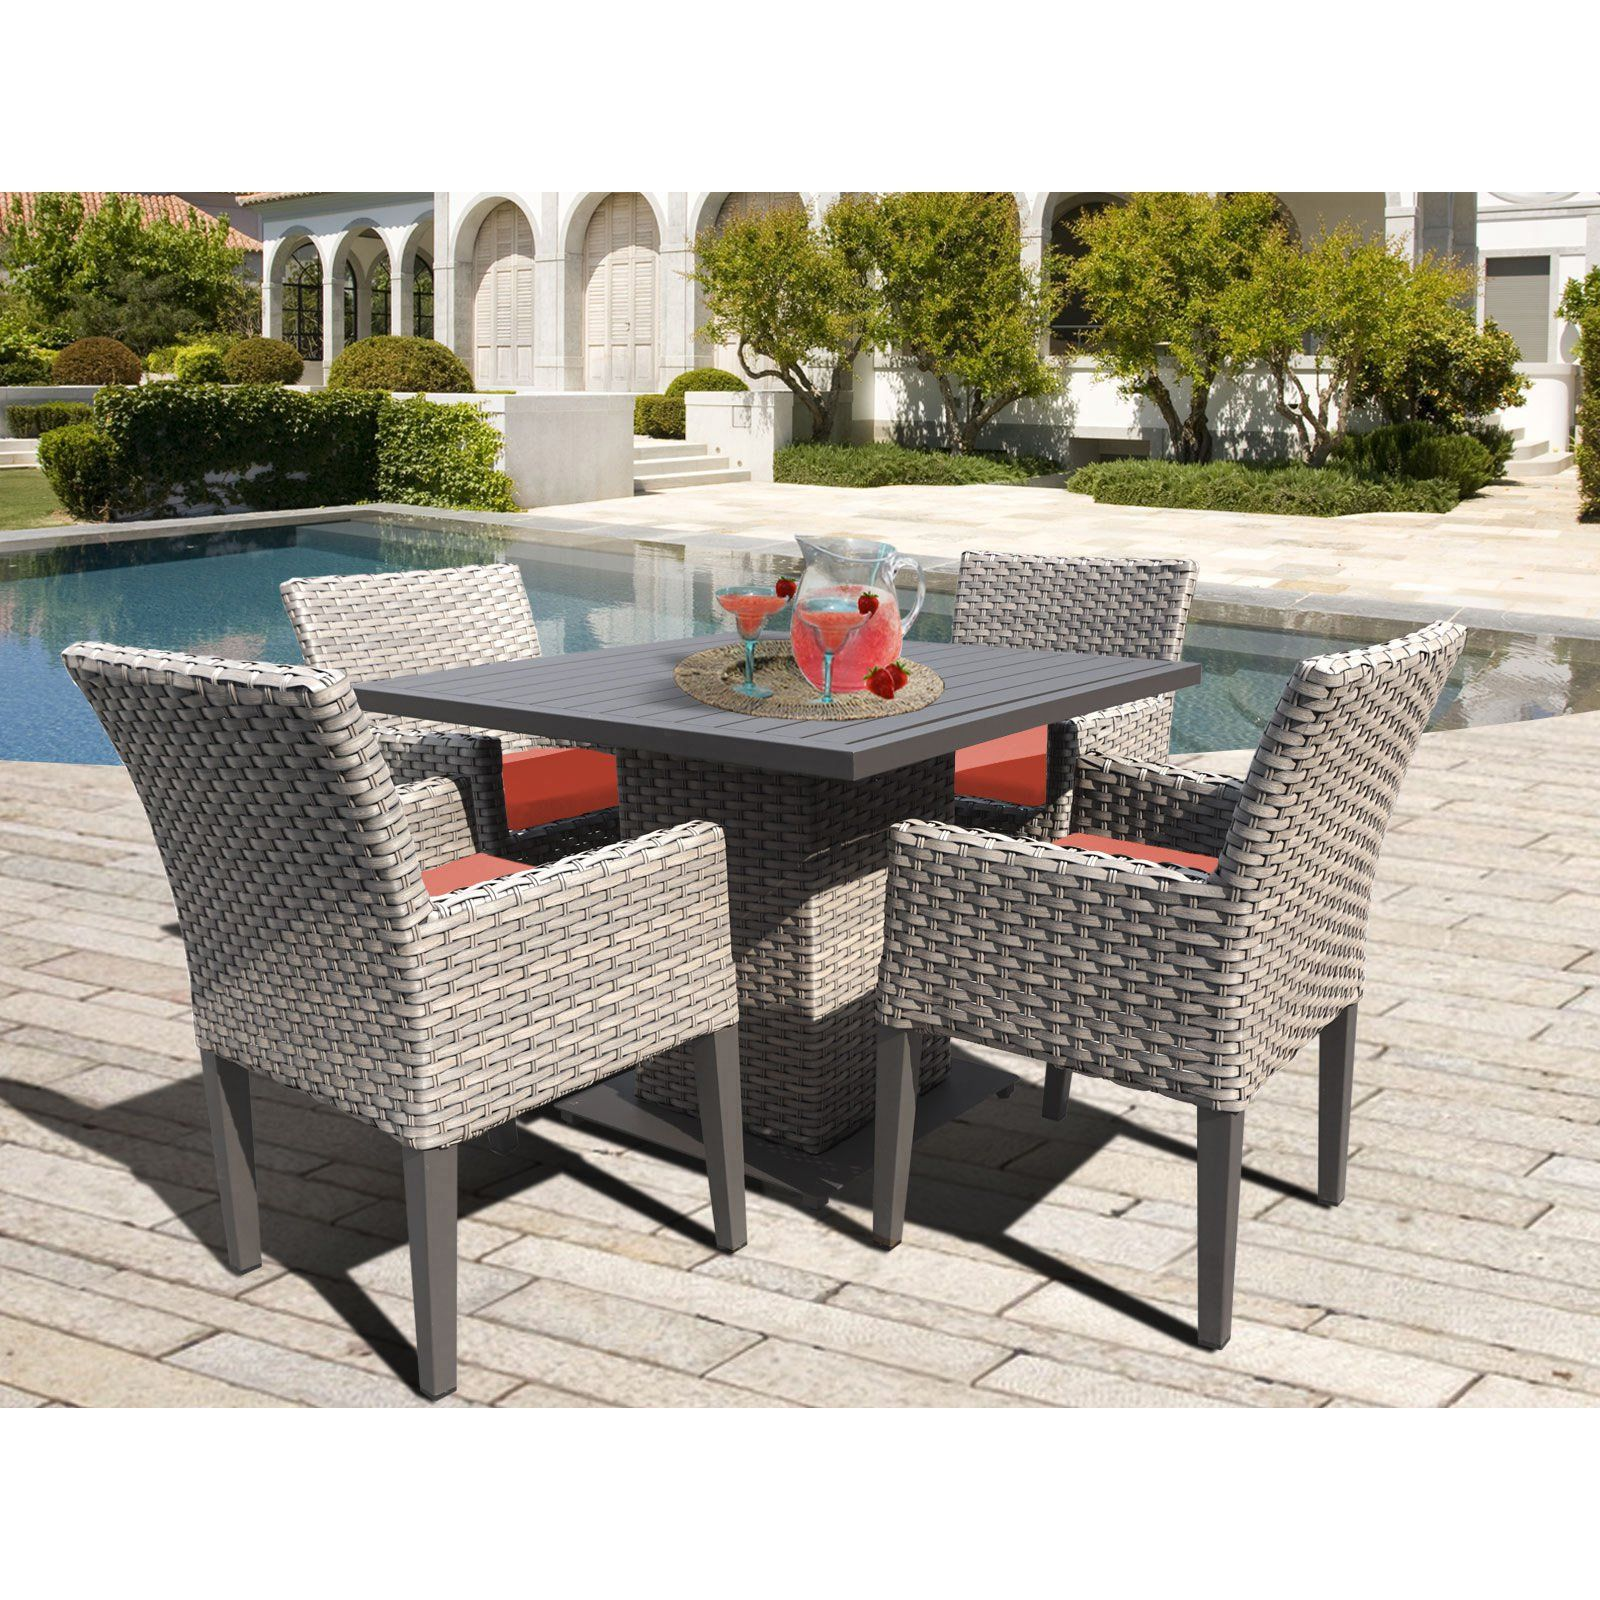 Tk classics oasis wicker 5 piece outdoor square dining table set tangerine